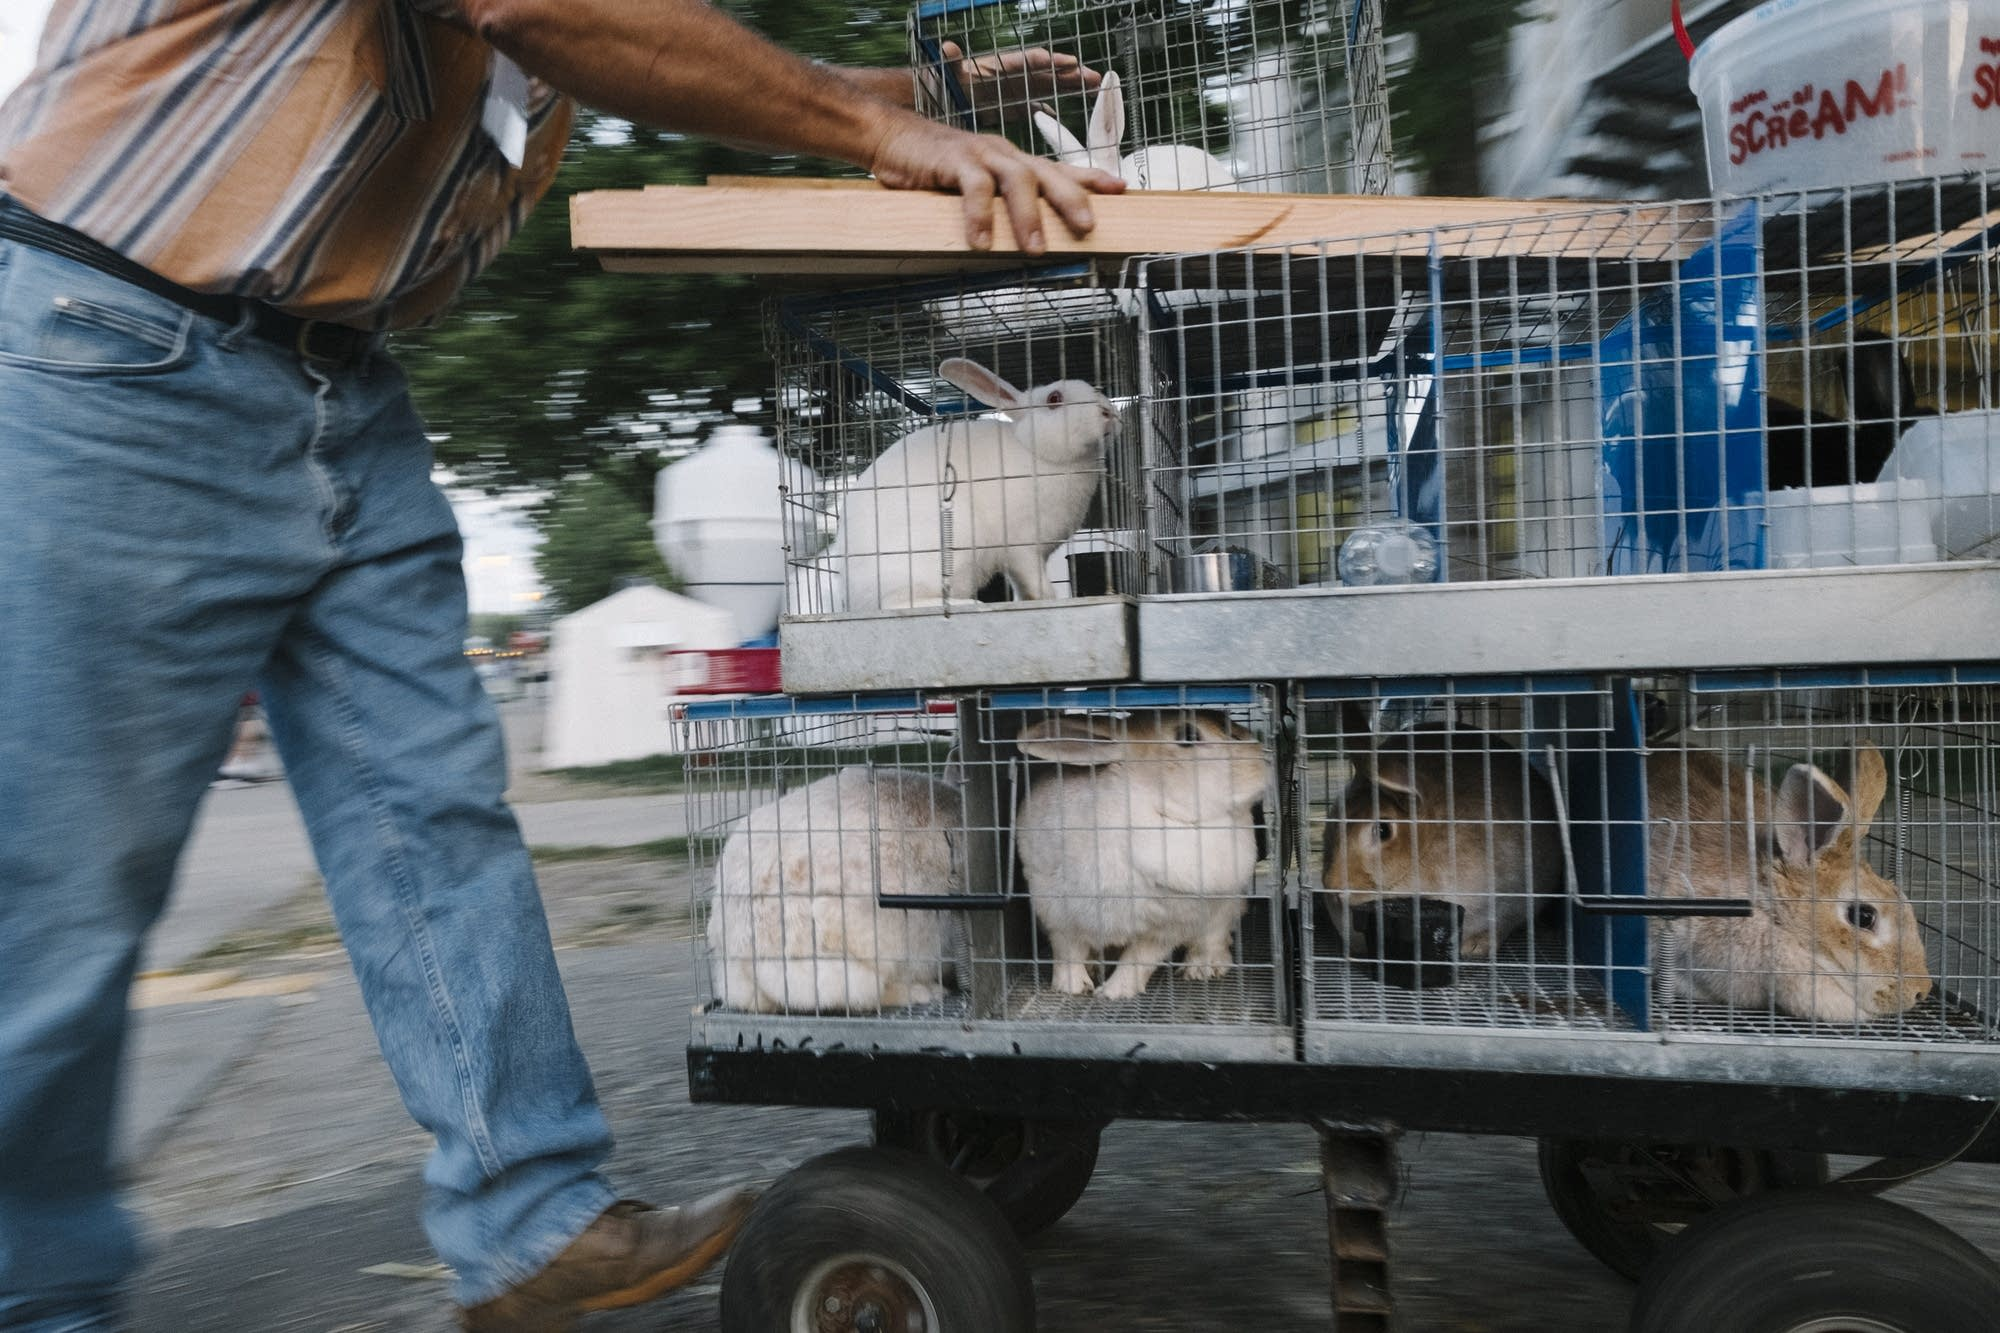 A cart of rabbits gets pushed into the poultry barn.